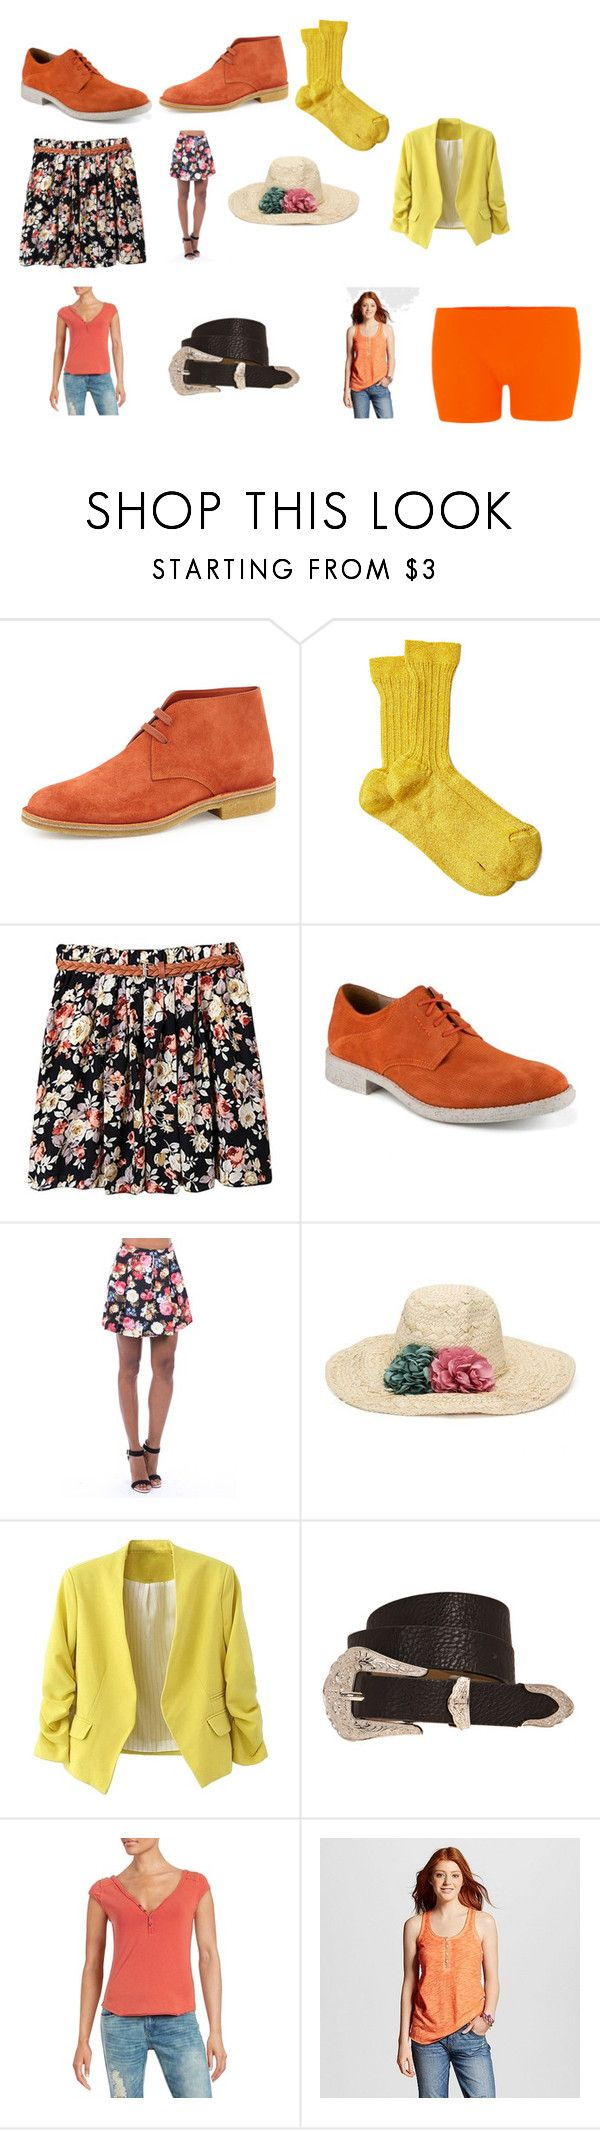 """""""Nicole Eggert's outfit at the zoo in The Double O Kid"""" by terrence-michael-clay on Polyvore featuring Bottega Veneta, Missoni, Marc New York, Free People, Mossimo Supply Co. and WearAll"""